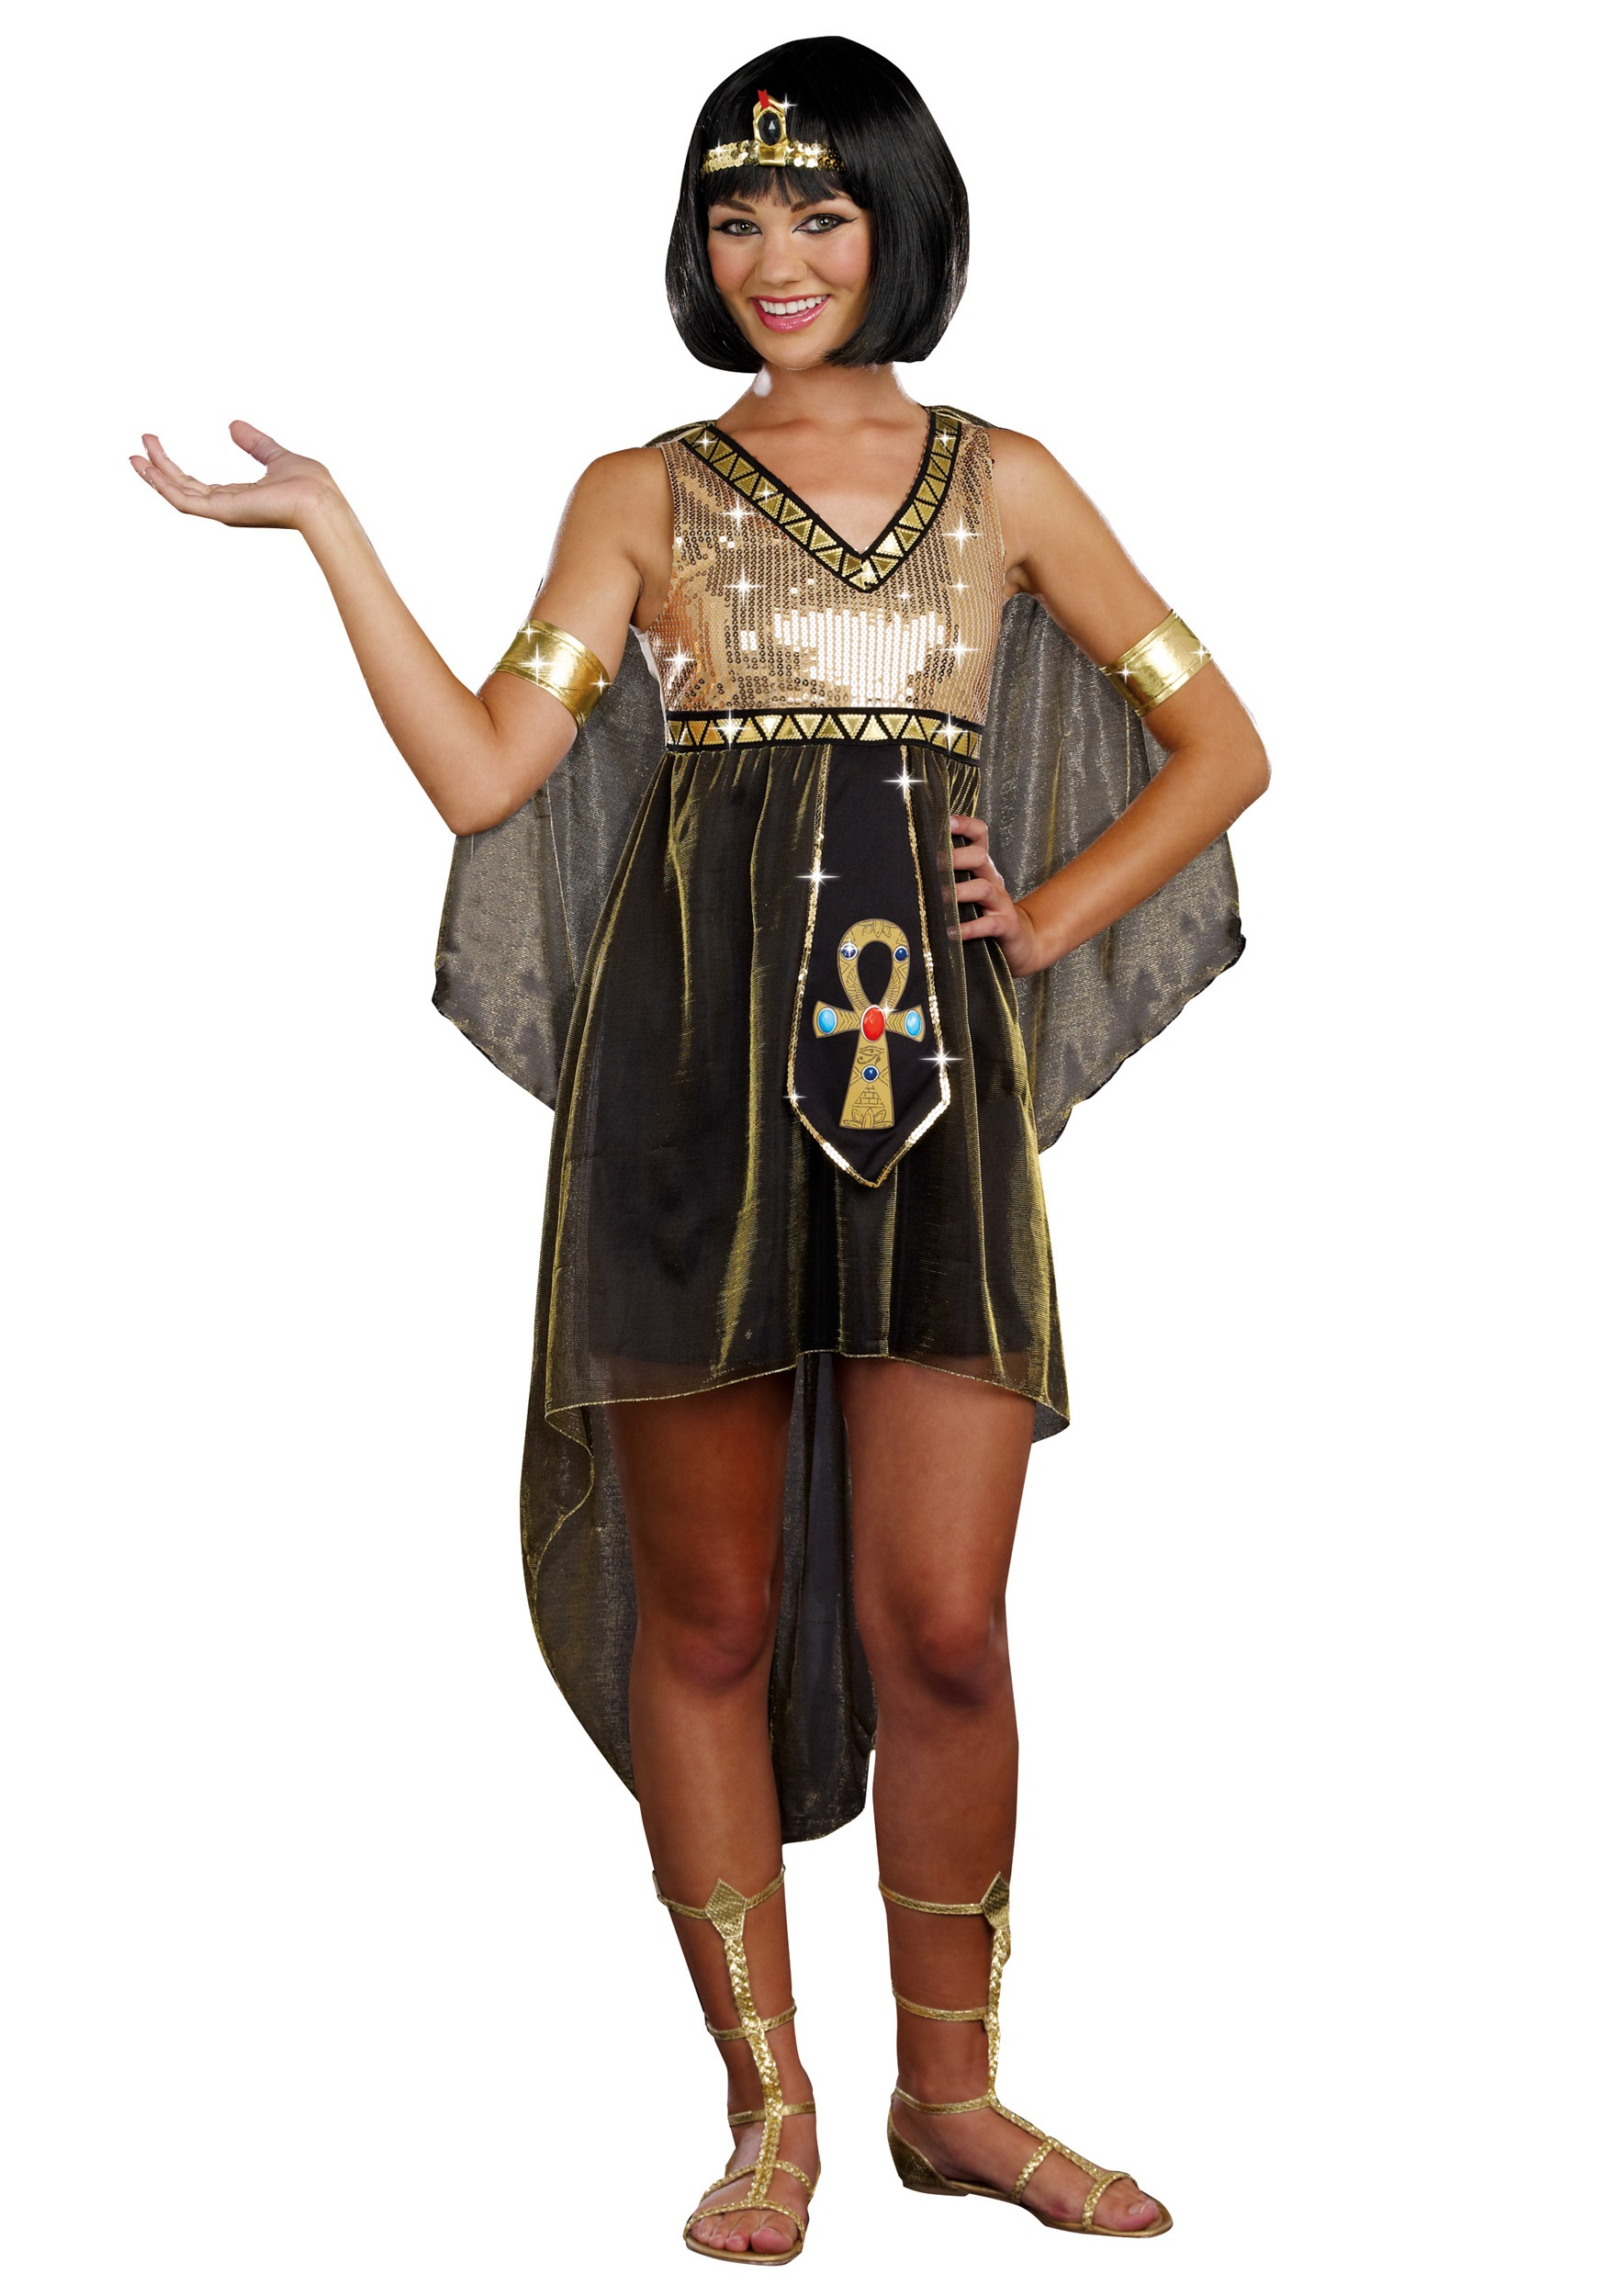 Teen Jewel of the Nile Cleopatra Costume  sc 1 st  Halloween Costumes & Teen Jewel of the Nile Cleopatra Costume - Halloween Costumes